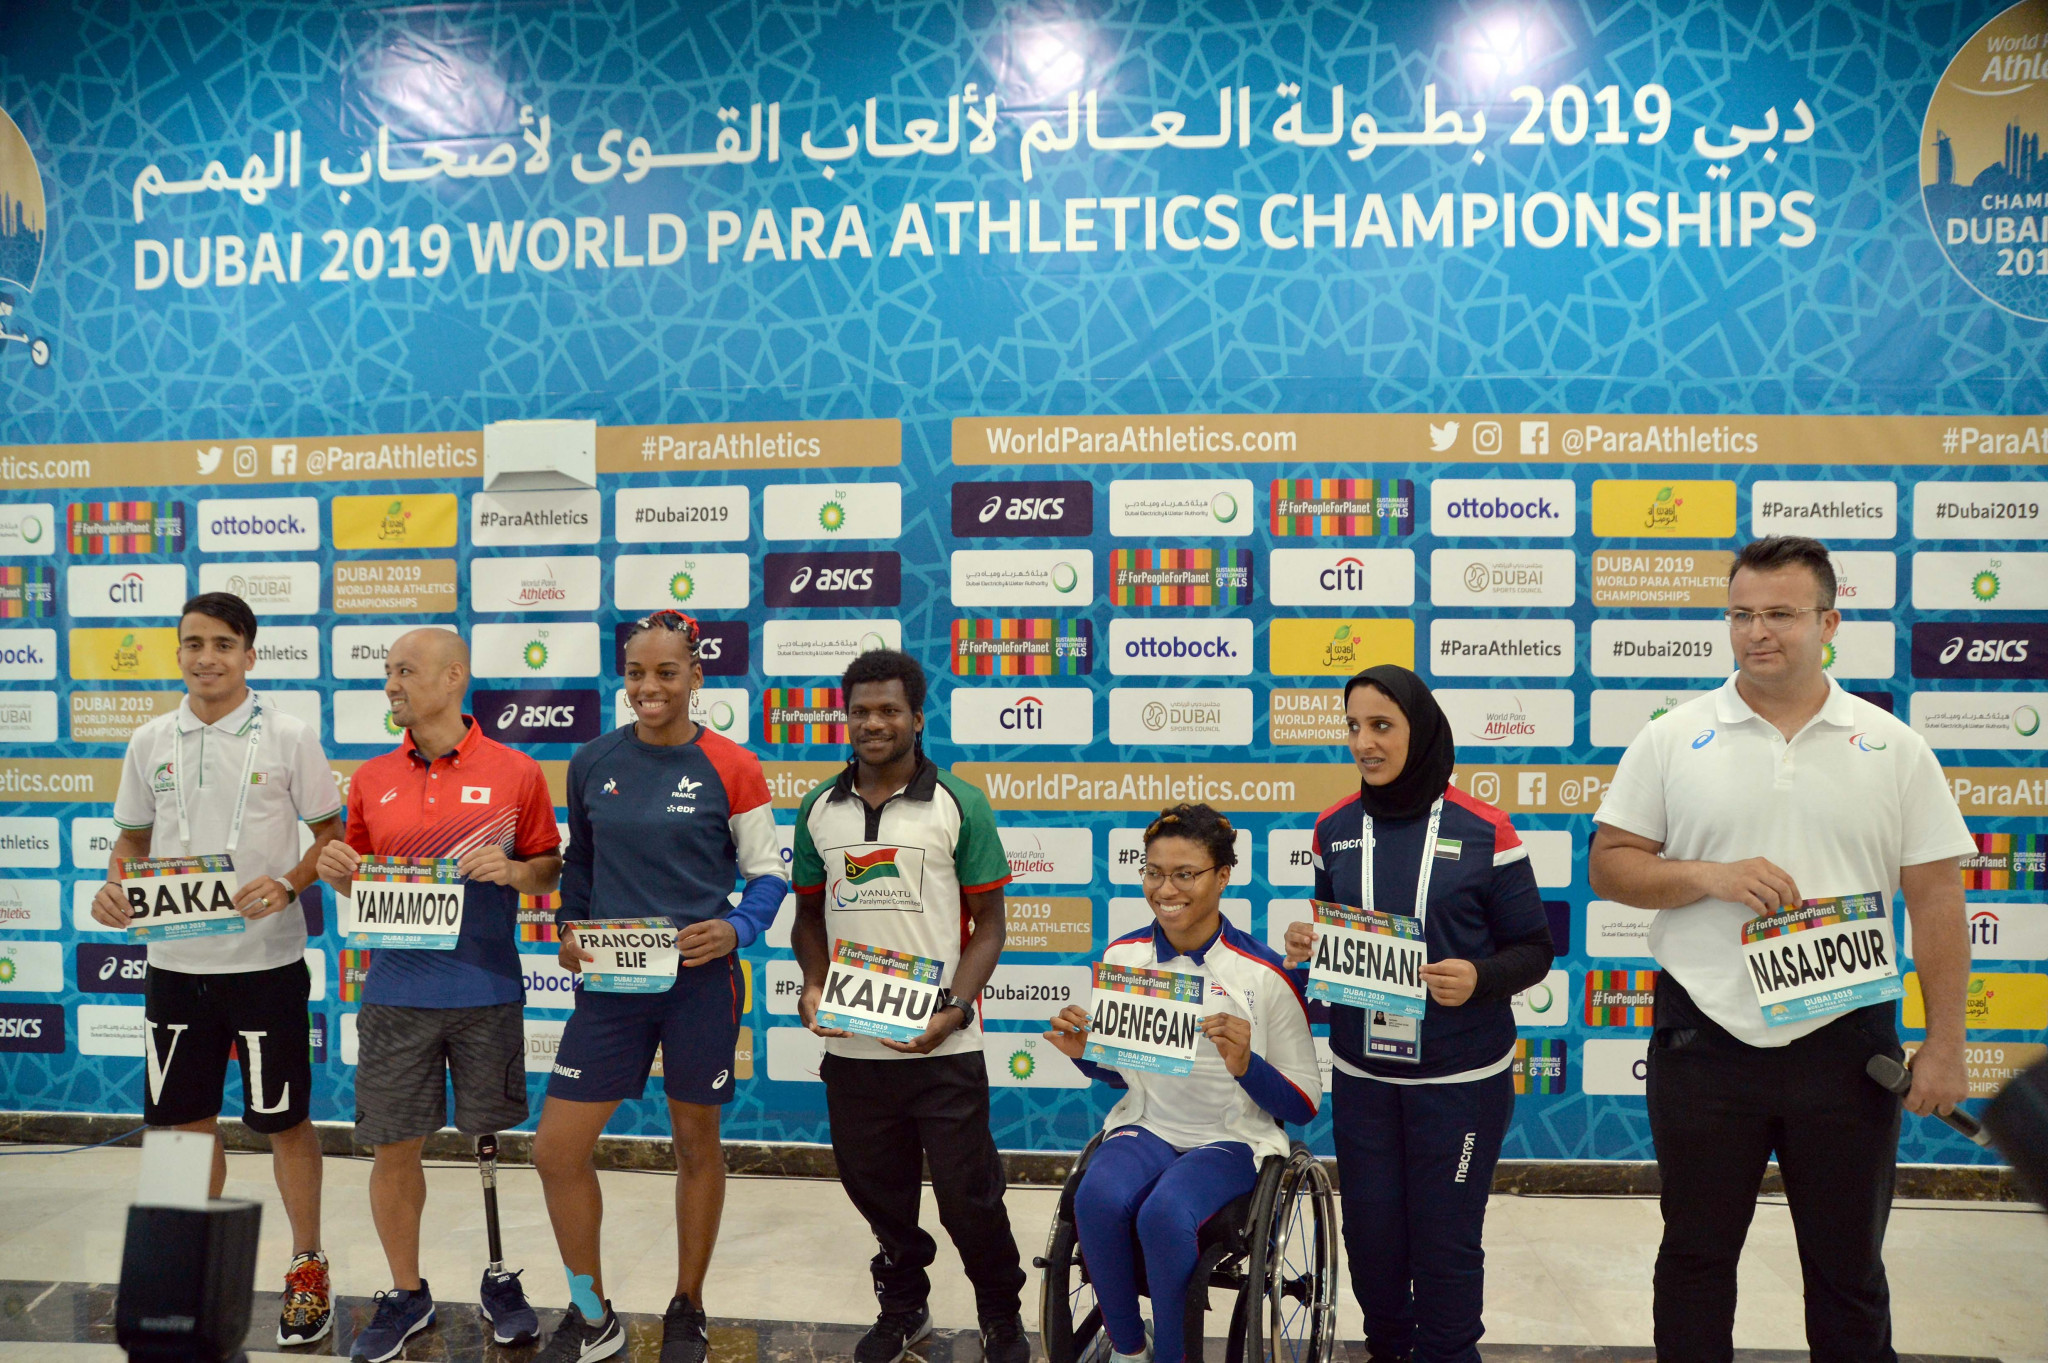 World Para Athletics Championships to promote UN Sustainable Development Goals